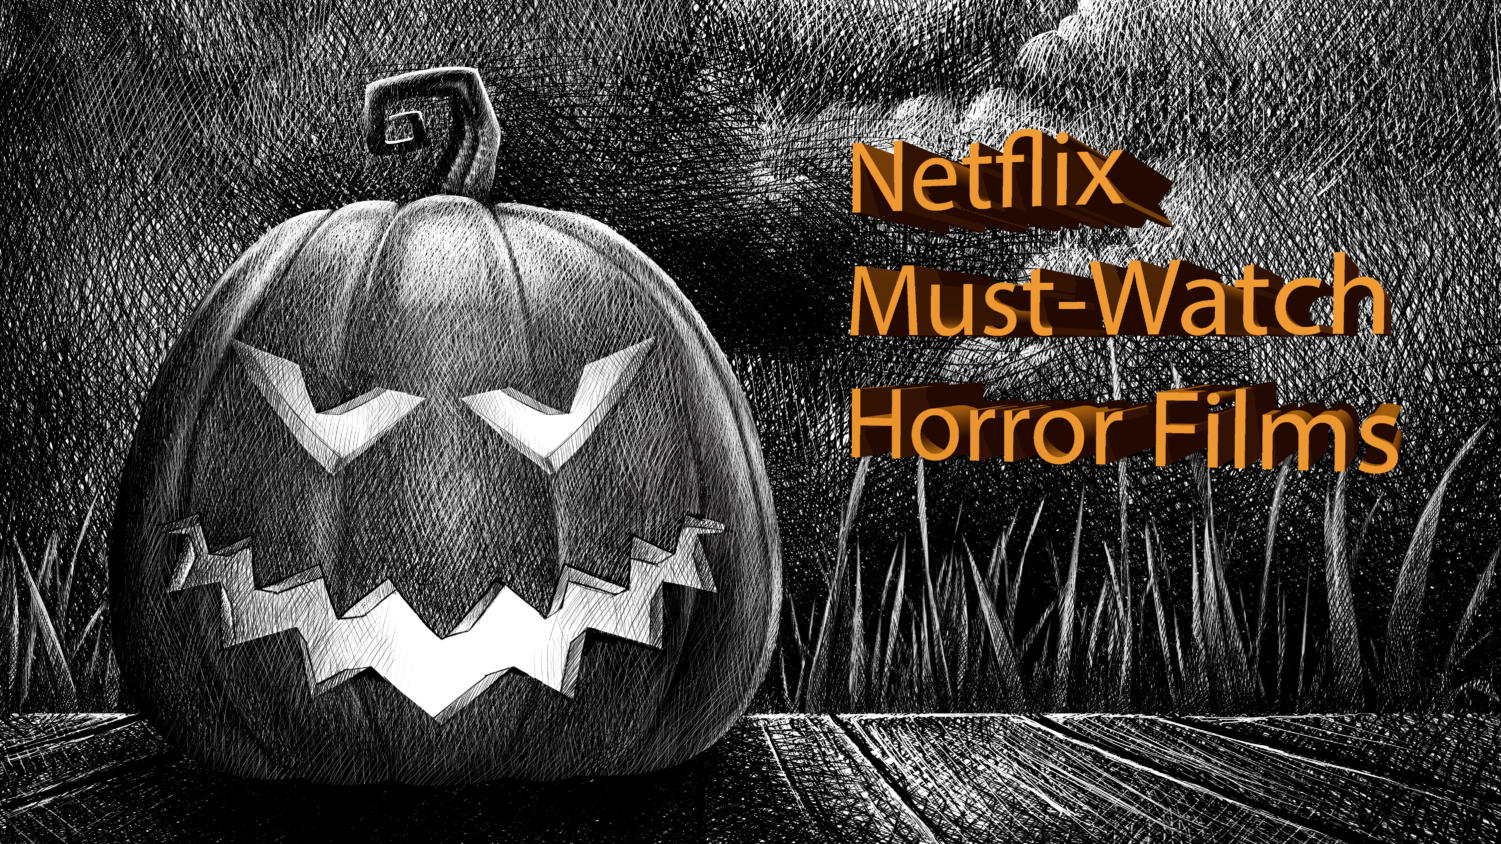 TRL's Grant Vogel reviewed the horror movies of Netflix for Halloween.